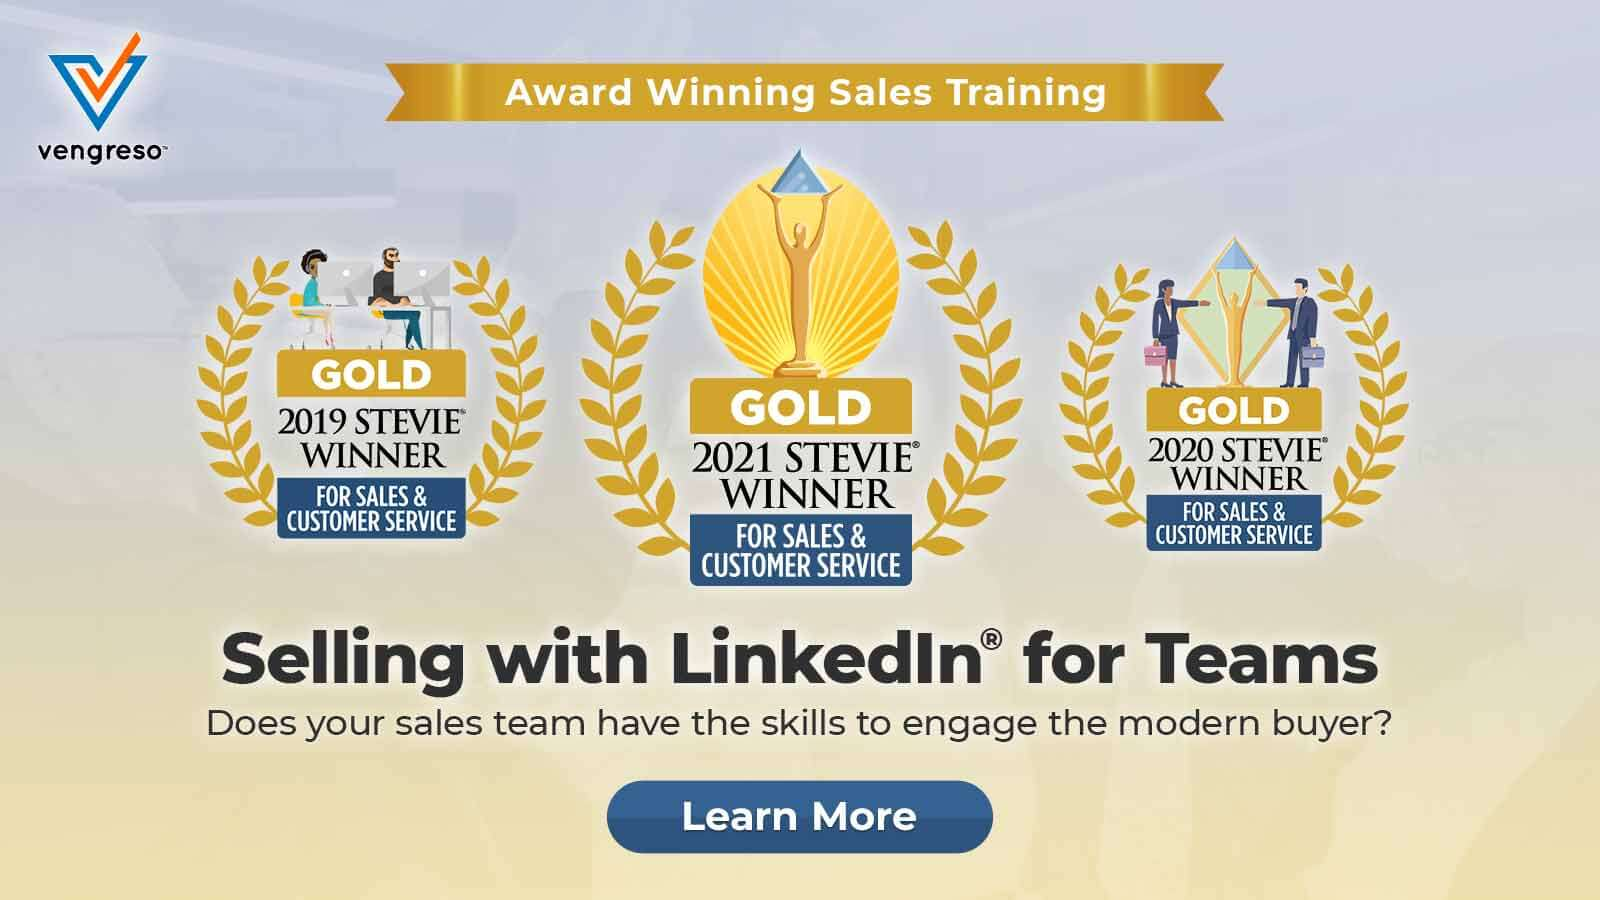 Selling with LinkedIn for Teams